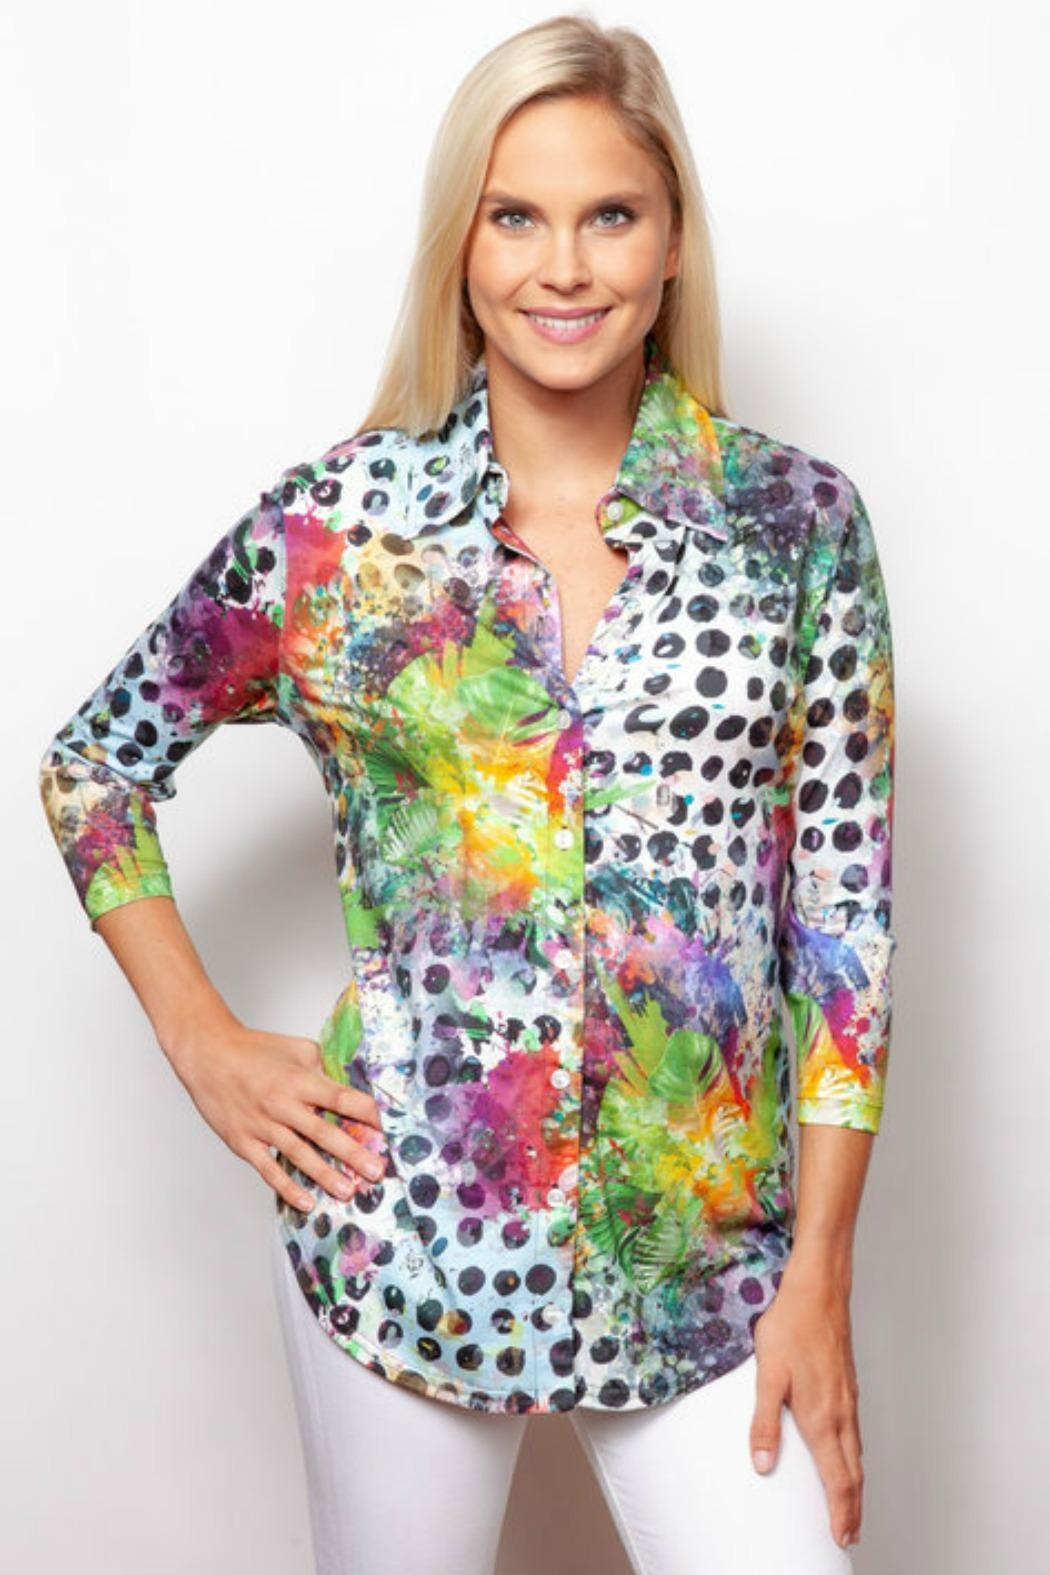 Sno Skins Colorful Button-Up Shirt - Main Image